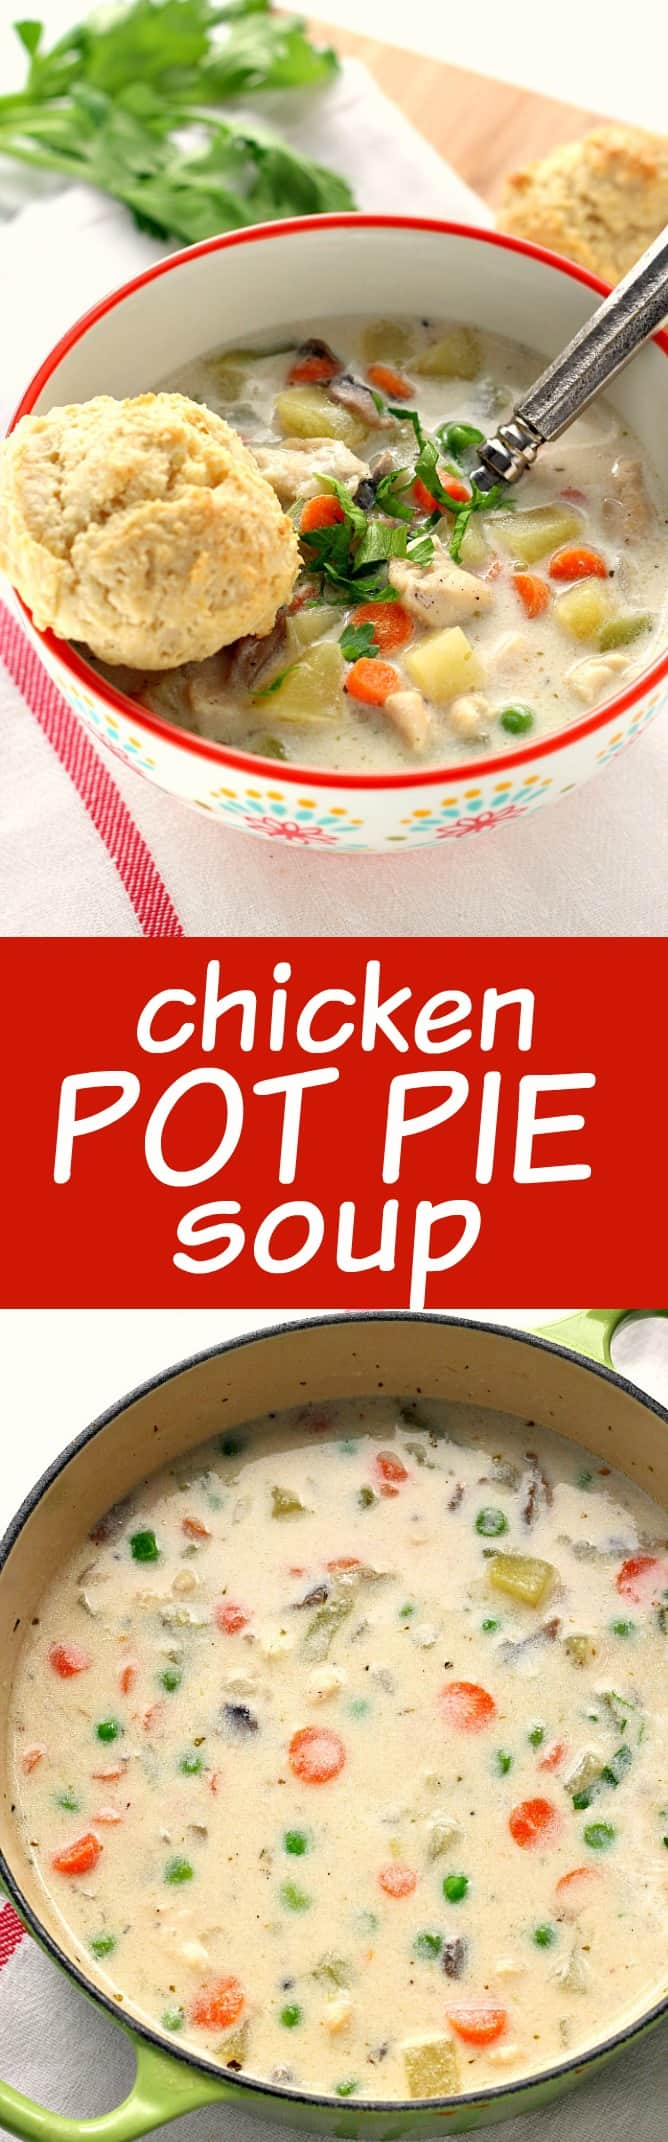 Chicken pot pie soup recipe crunchy creamy sweet for How long to boil a whole chicken for soup